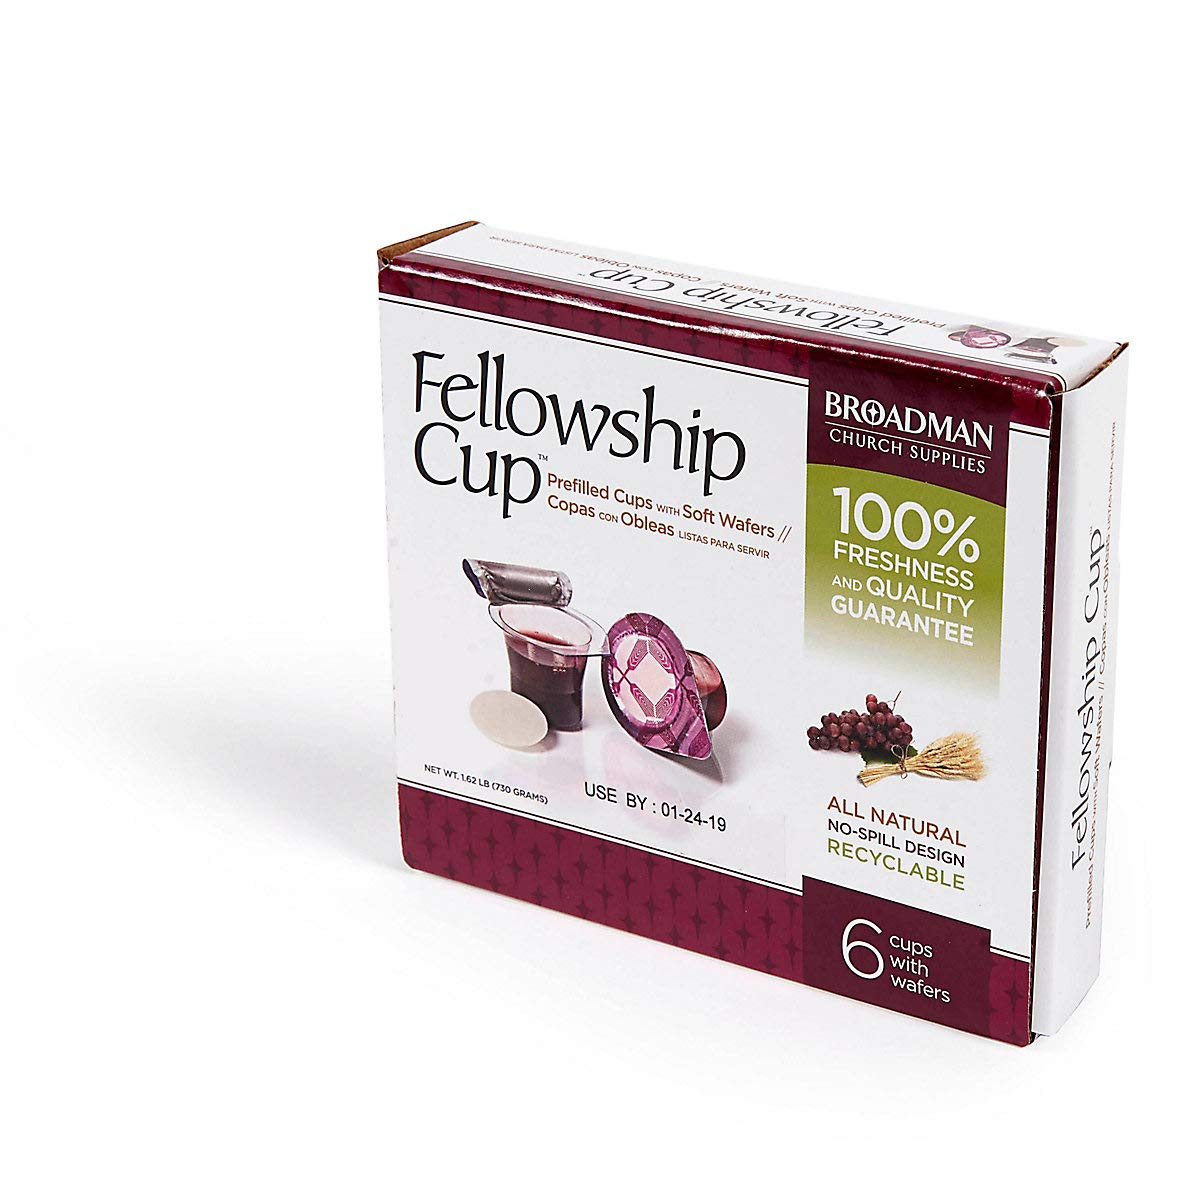 Broadman Church Supplies Pre-filled Communion Fellowship Cup, Juice and Wafer Set, 6 Count